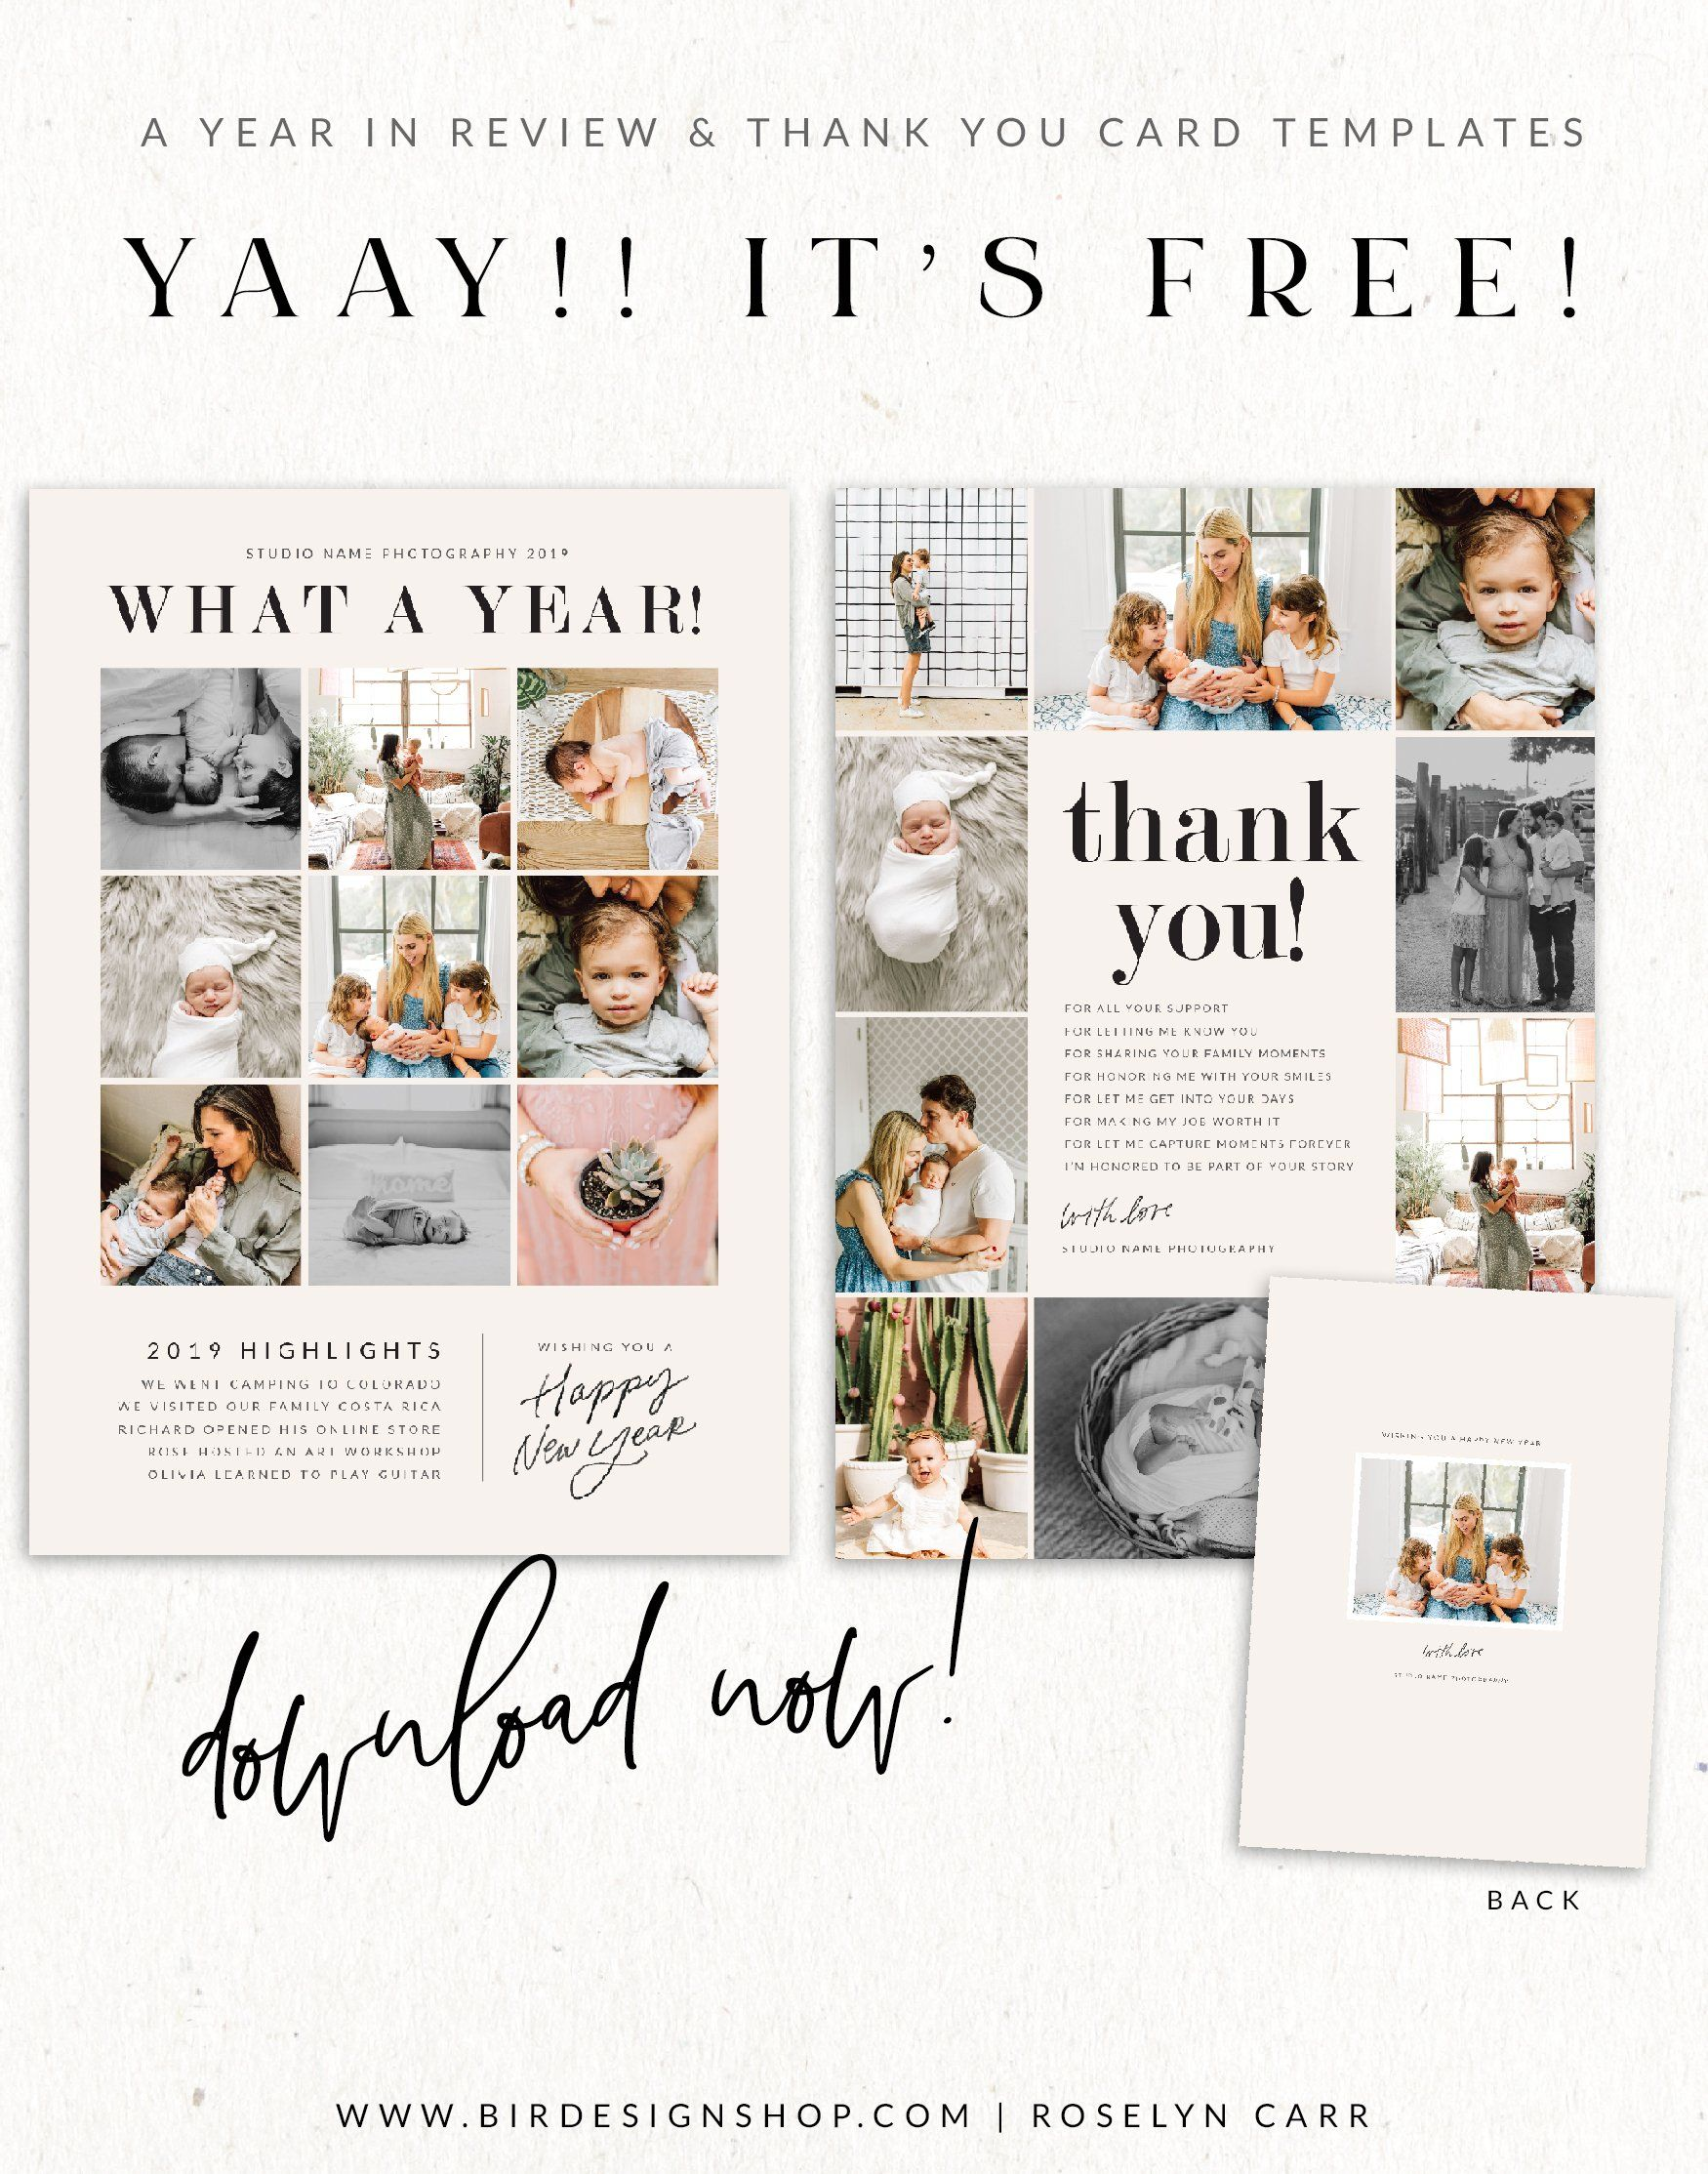 Free Studio Cards Thank You Cards A Year In Review Photo Card Template Christmas Card Templates Free Free Photo Cards